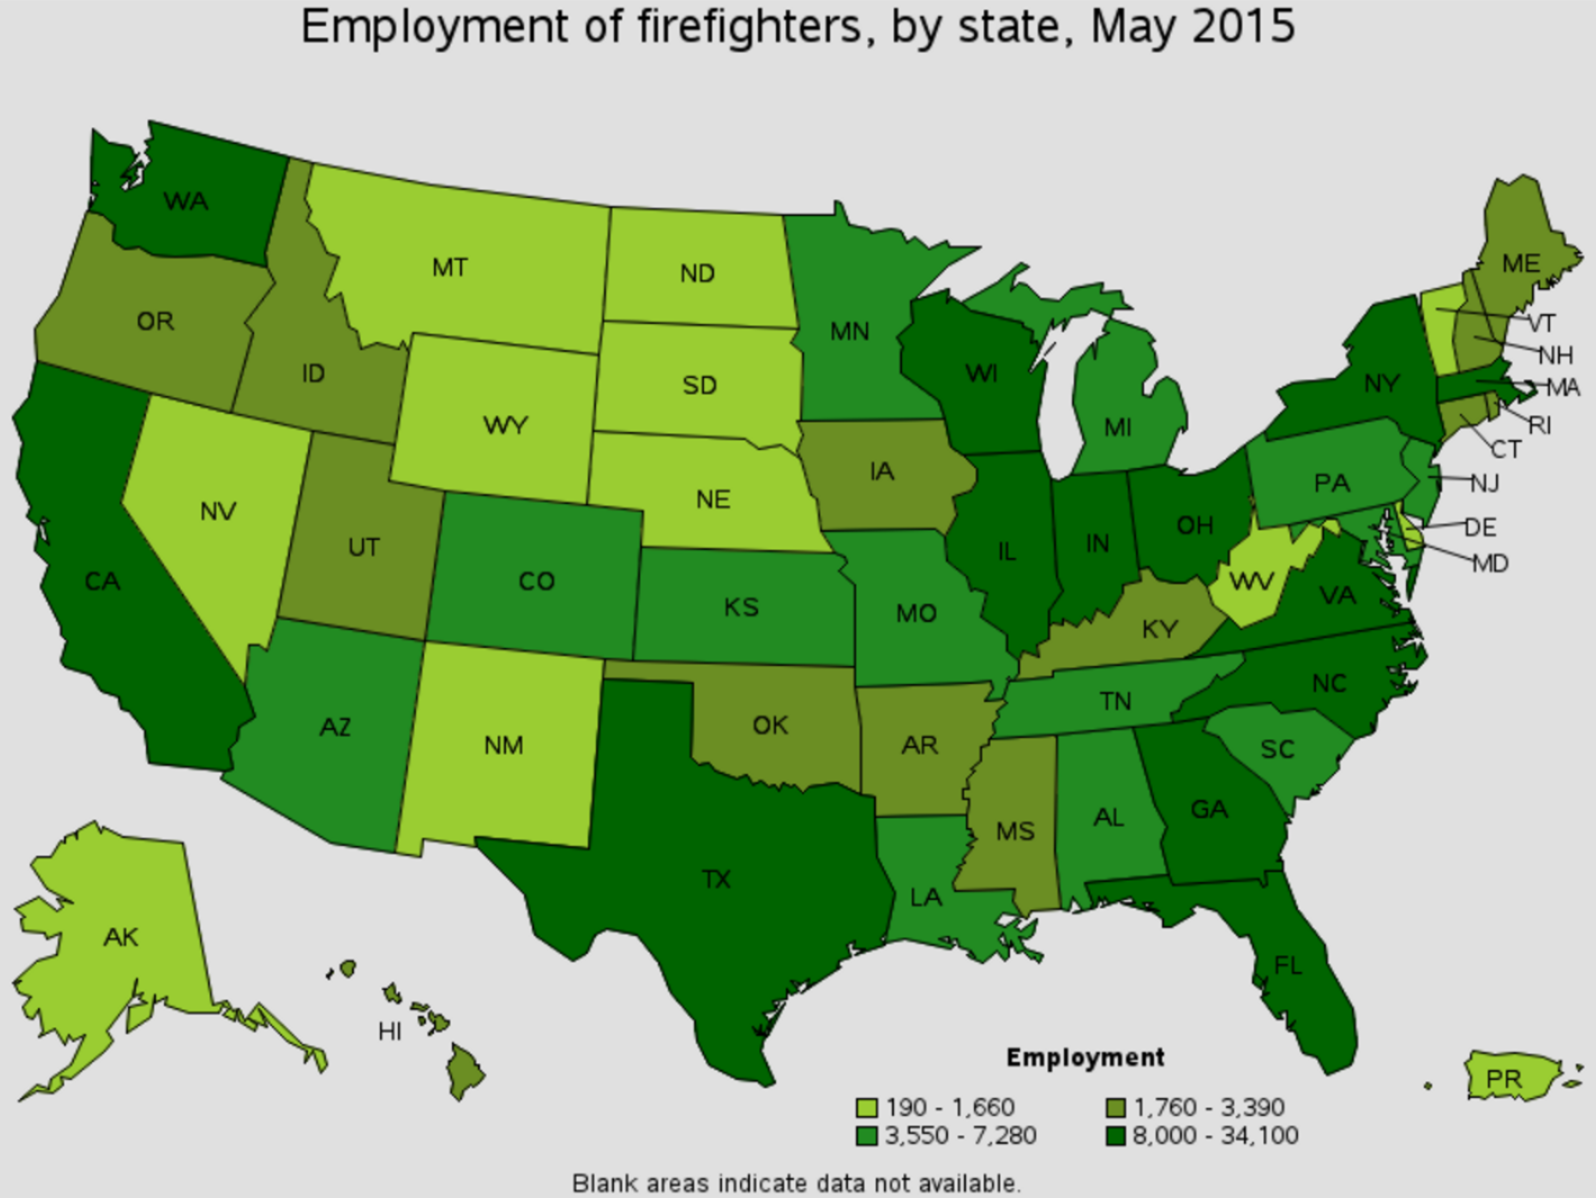 firefighter job outlook by state Oxnard California